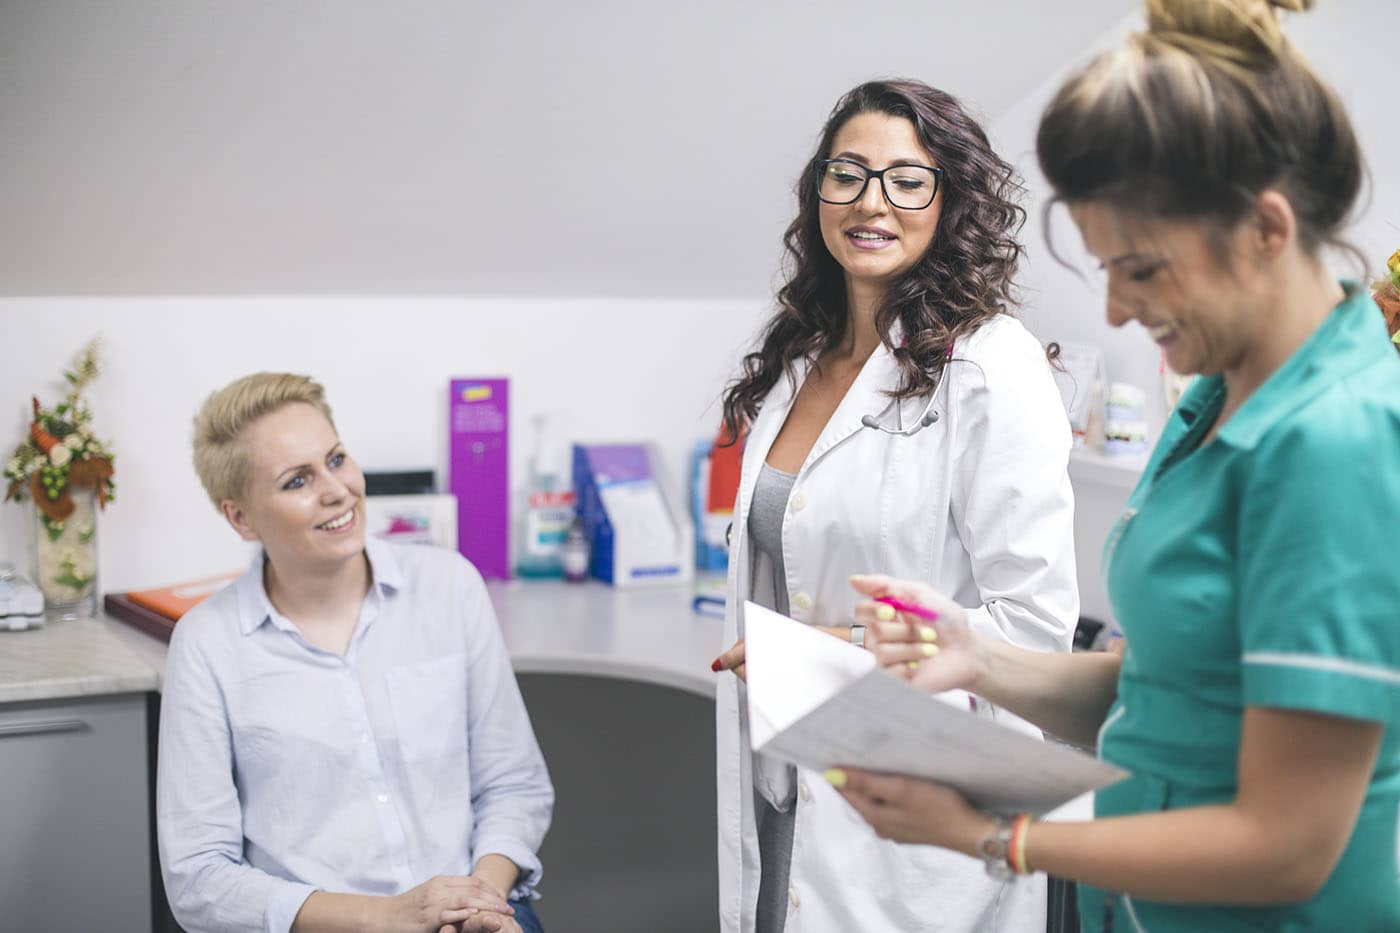 How to Become a Women's Health Nurse Practitioner